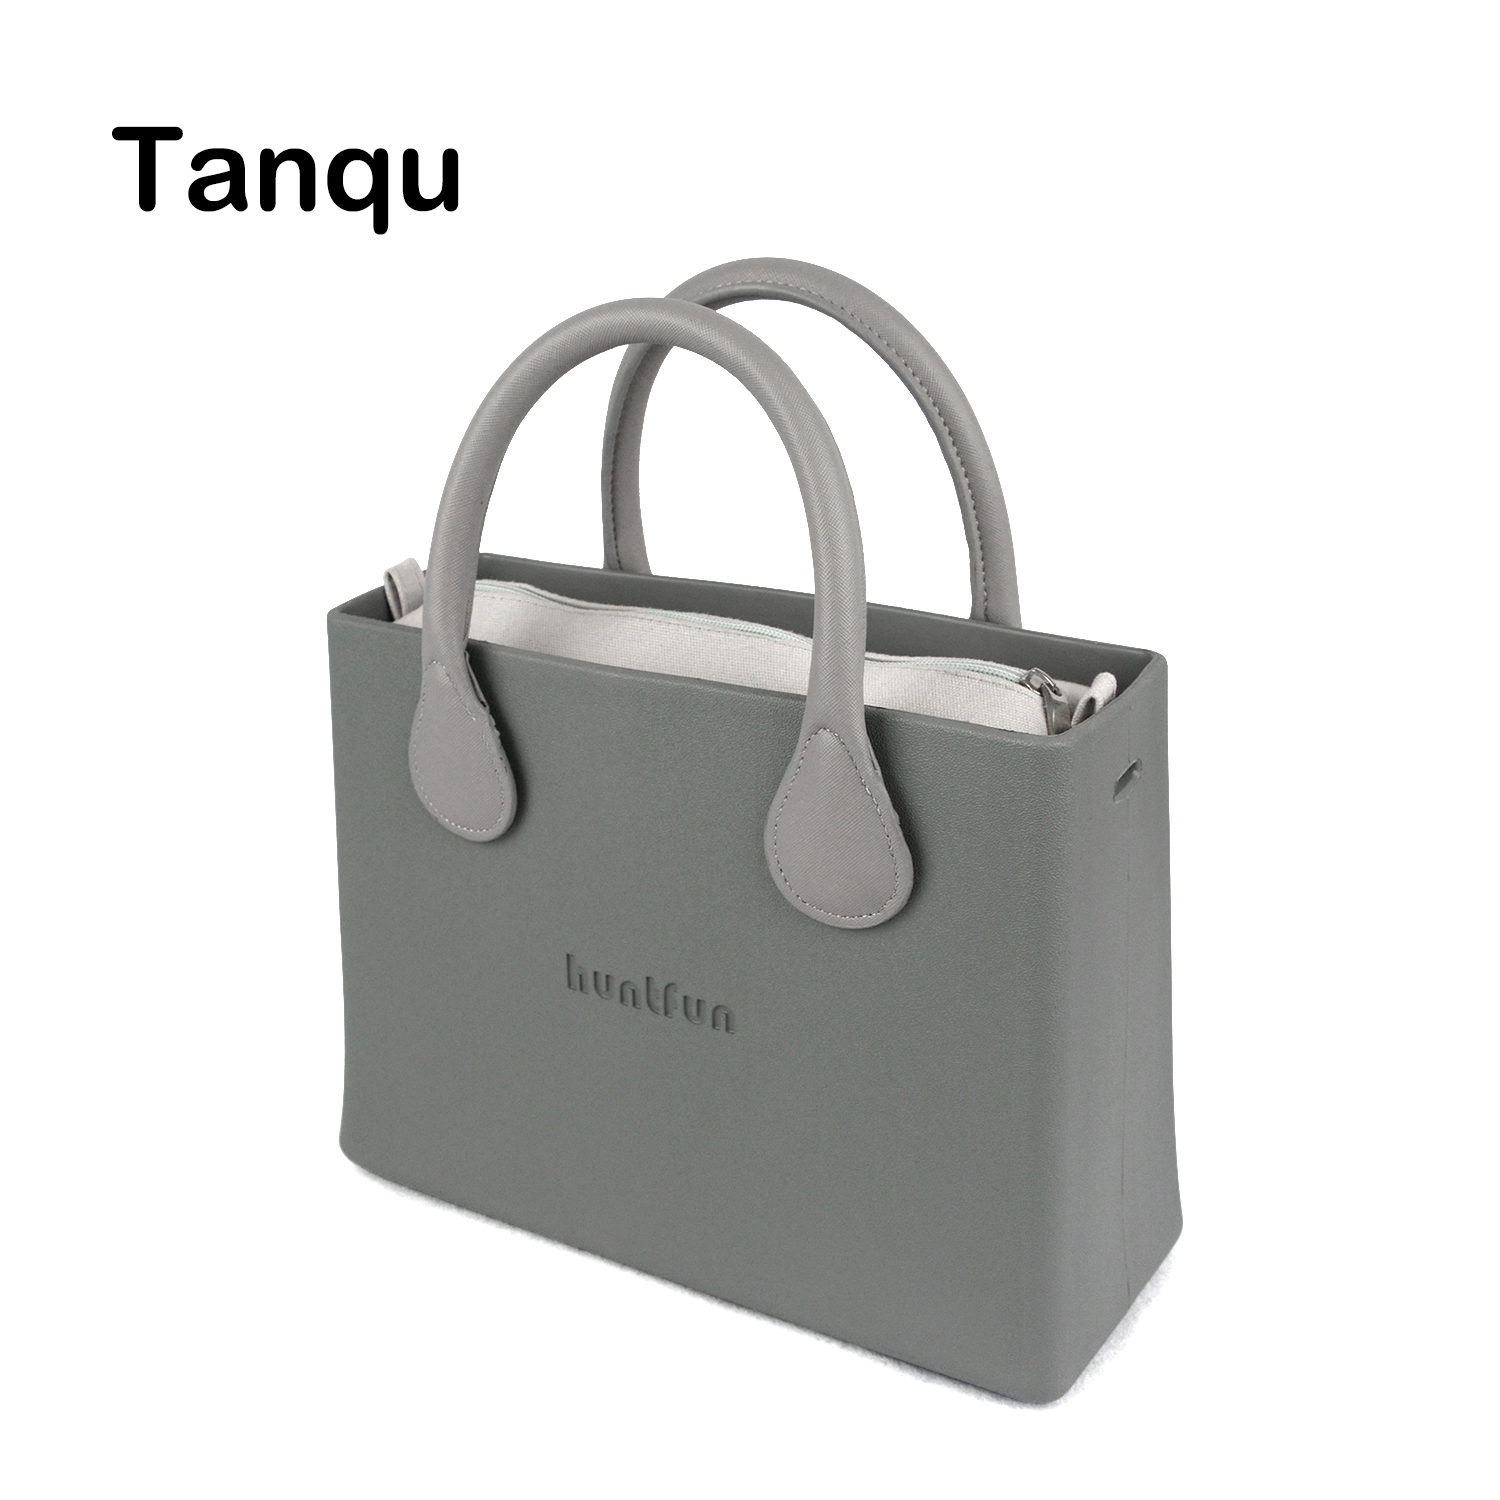 Tanqu huntfun Rubber Silicon EVA Square Bag Solid Canvas Insert Colorful Leather Handle Waterproof O Bag Style Women O Handbag tanqu tela insert lining for o chic ochic colorful canvas inner pocket waterproof inner pocket for obag